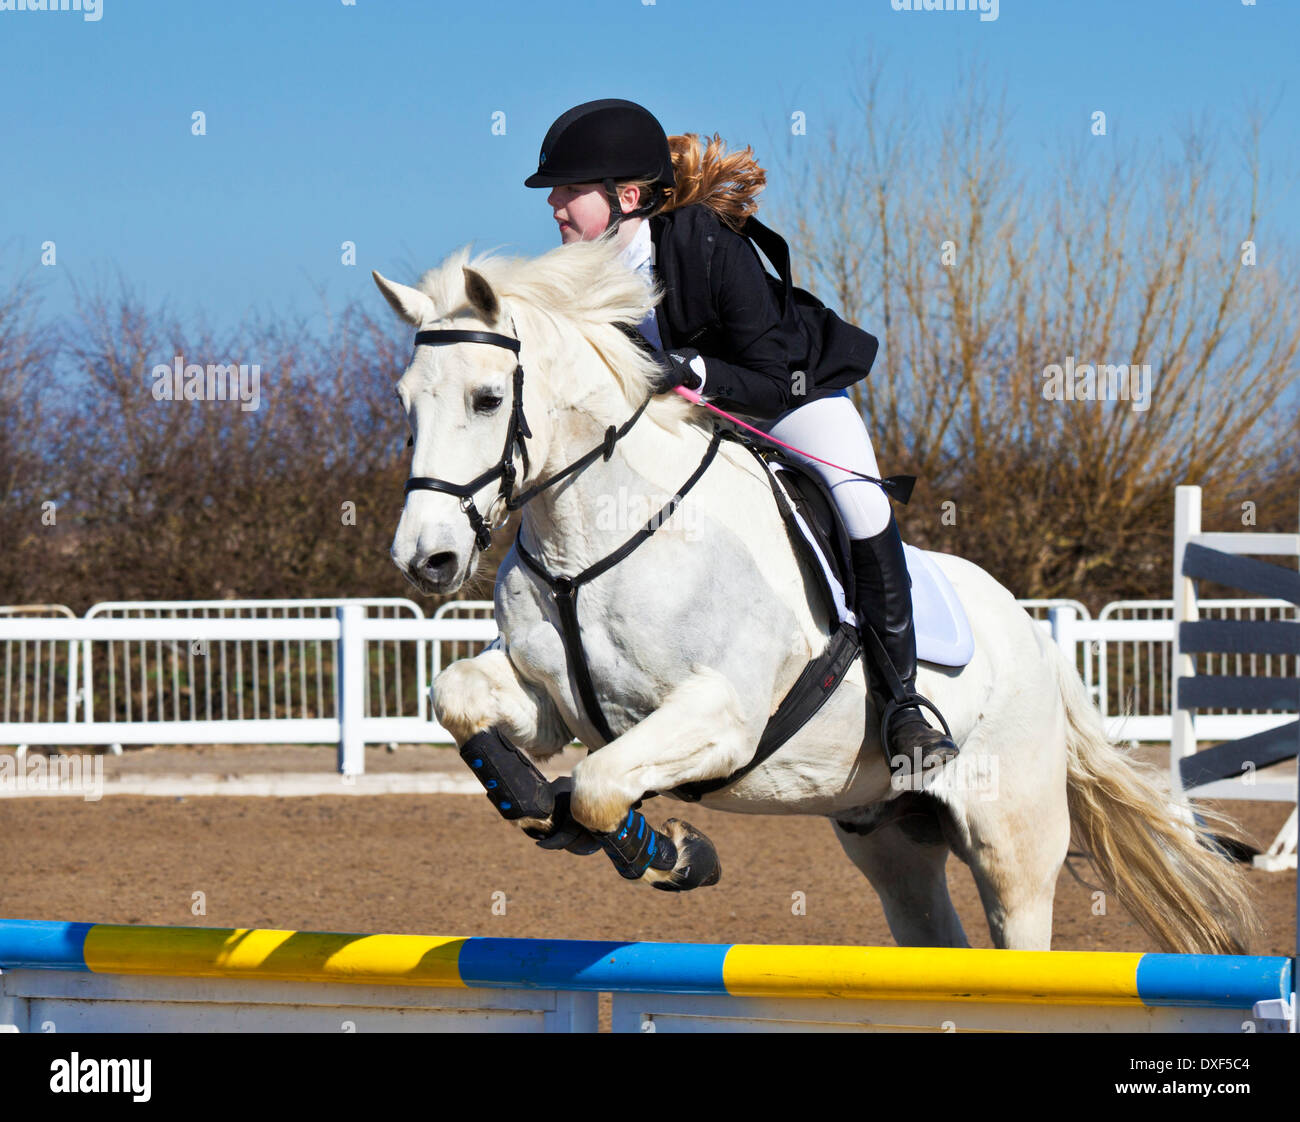 Young girl jumping a white horse pony over a jump at a showjumping event horse riding - Stock Image